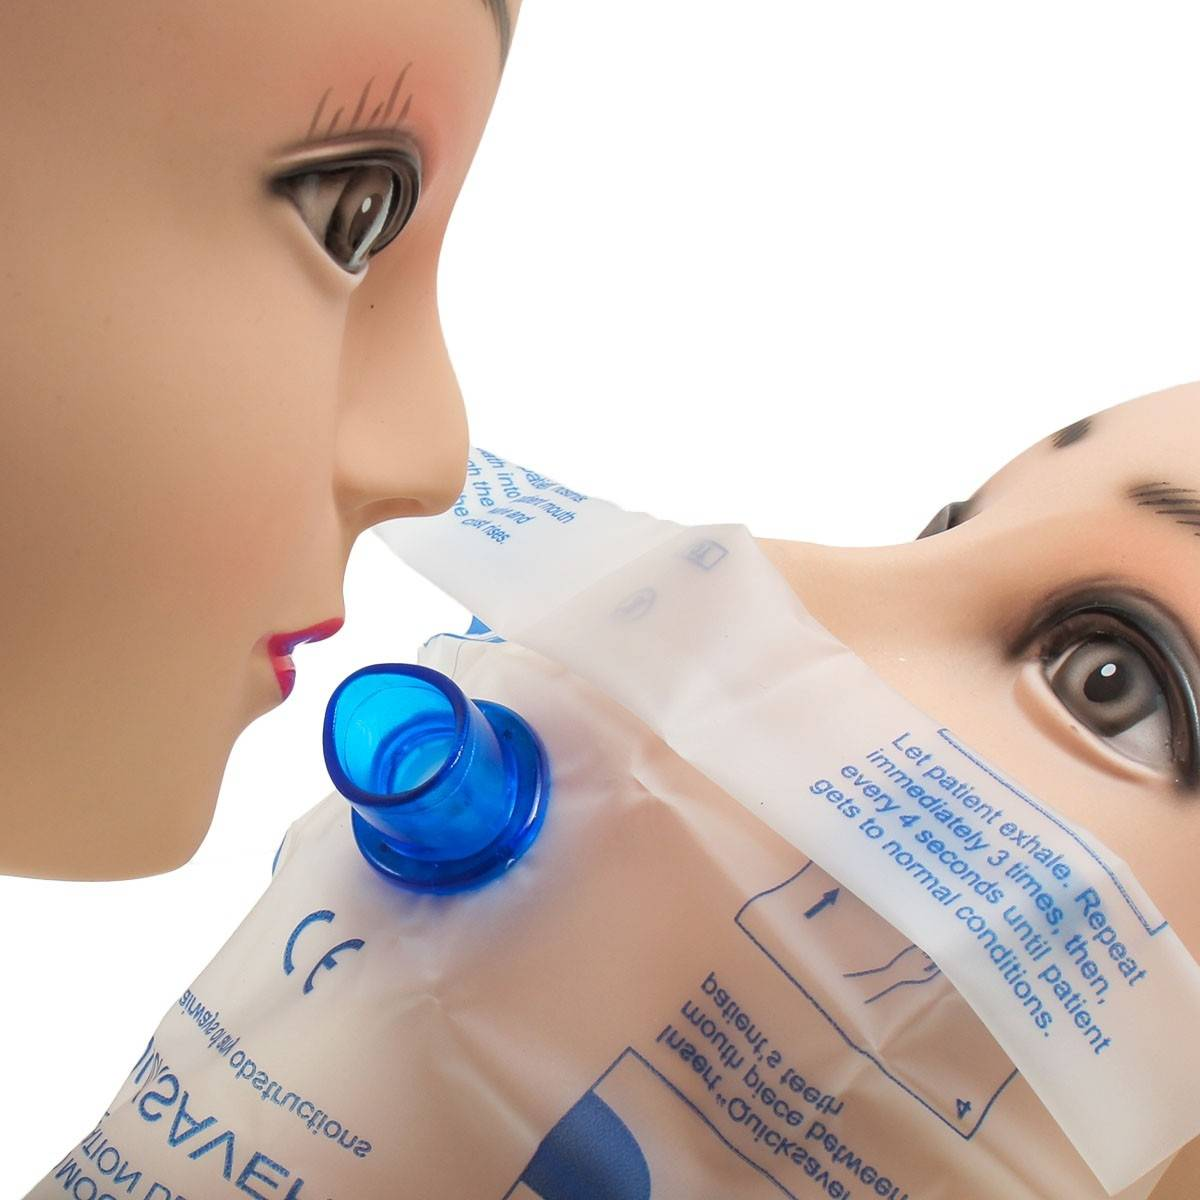 CPR Resuscitation Mouth To Mouth Respirator Face Shield Mask With One Way Valve